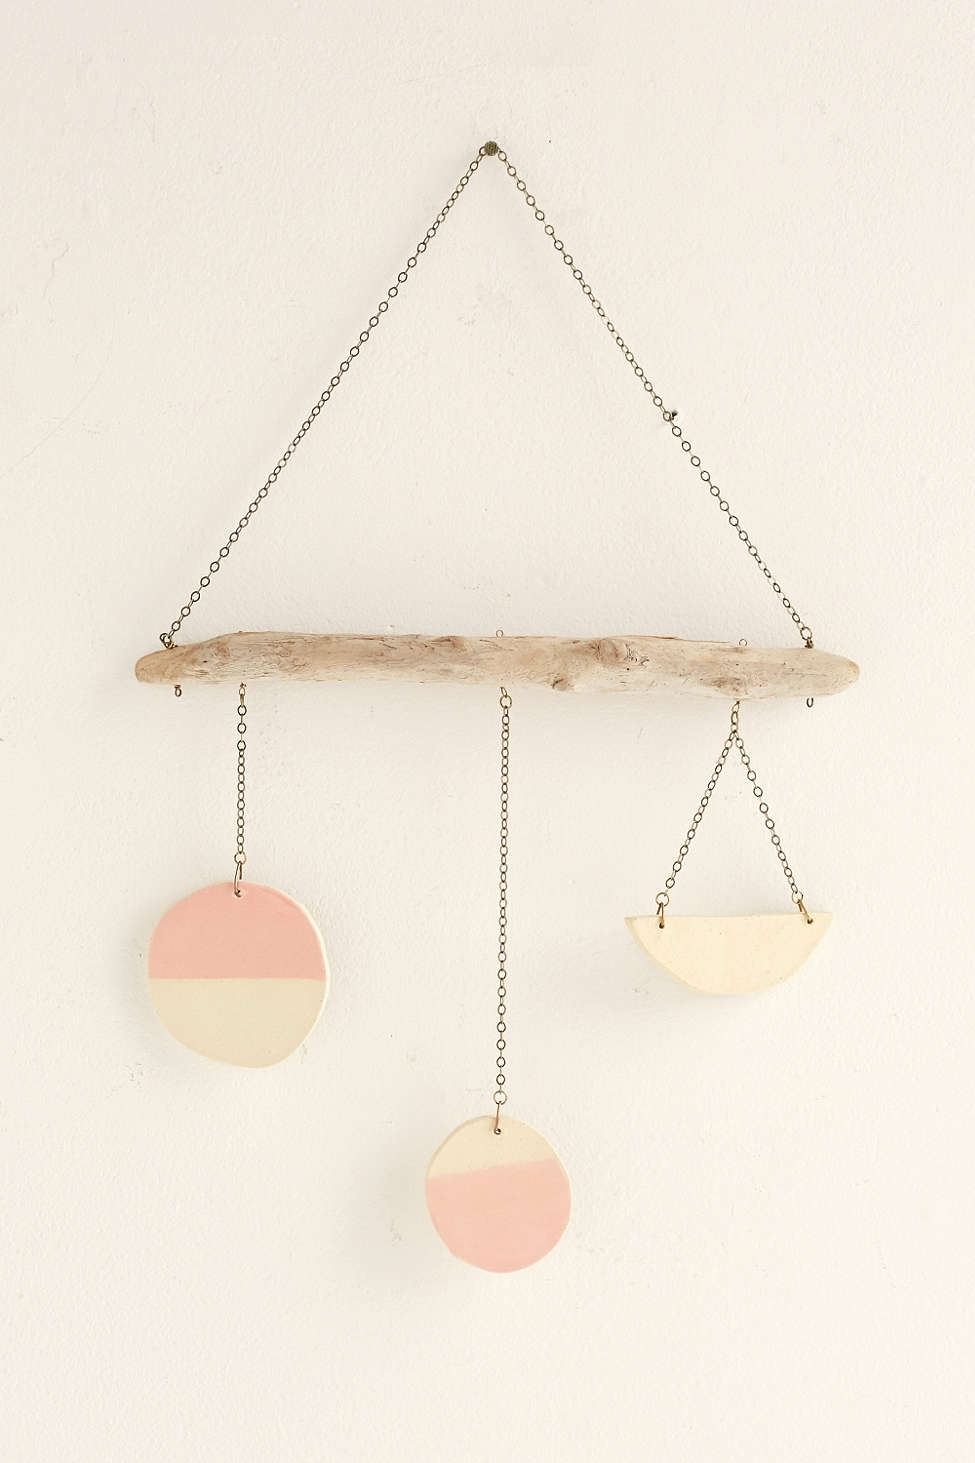 Urban Outfitters Wall Art - Unavocecr intended for Most Up-to-Date Urban Outfitters Wall Art